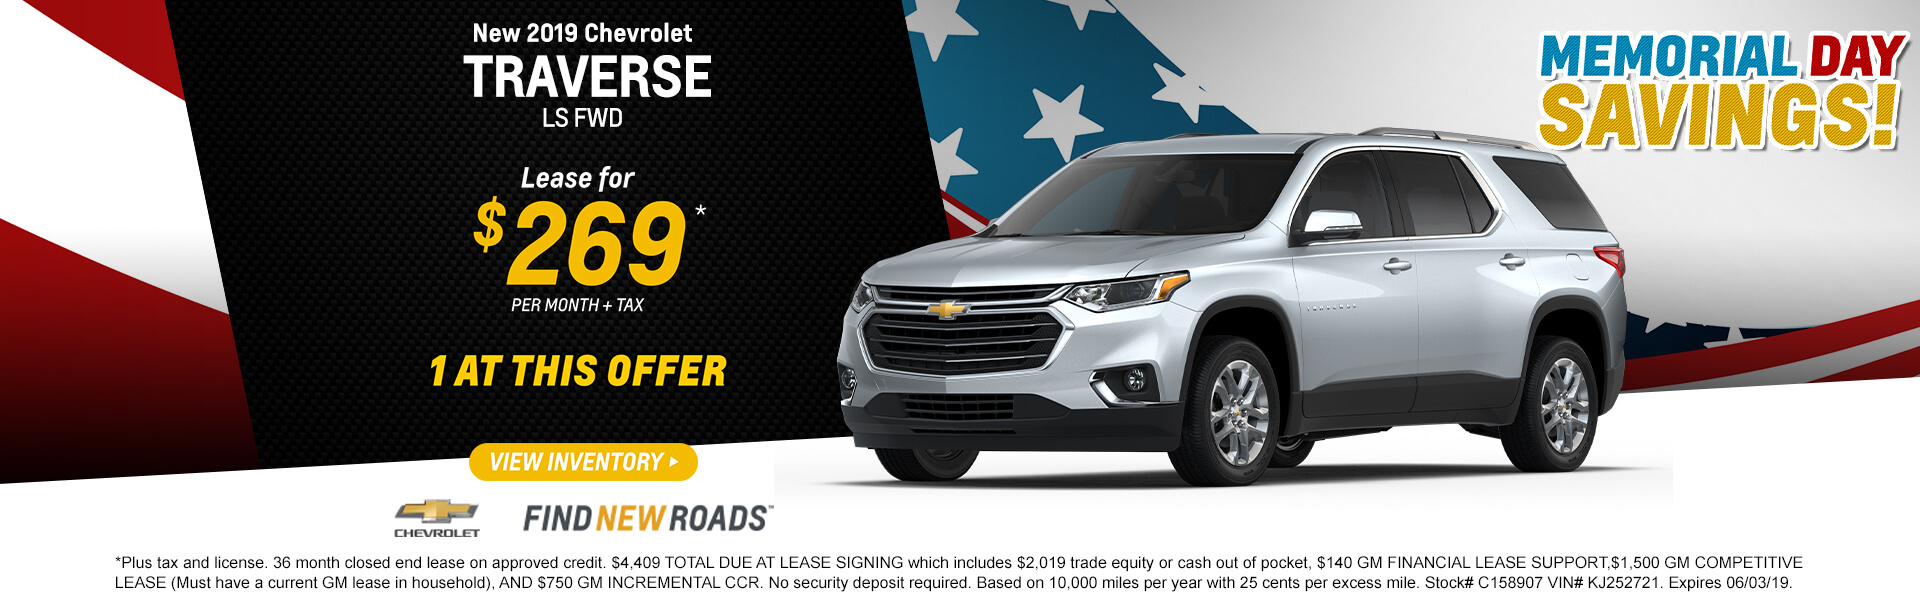 2019 CHEVROLET TRAVERSE LS FWD  Lease for $269* + tax per month  1 at this offer  *Plus tax and license. 36 month closed end lease on approved credit. $4,409 TOTAL DUE AT LEASE SIGNING which includes $2,019 trade equity or cash out of pocket, $140 GM FINANCIAL LEASE SUPPORT,$1,500 GM COMPETITIVE LEASE (Must have a current GM lease in household), AND $750 GM INCREMENTAL CCR. No security deposit required. Based on 10,000 miles per year with 25 cents per excess mile. Stock# C158907 VIN# KJ252721. Expires 06/03/19.